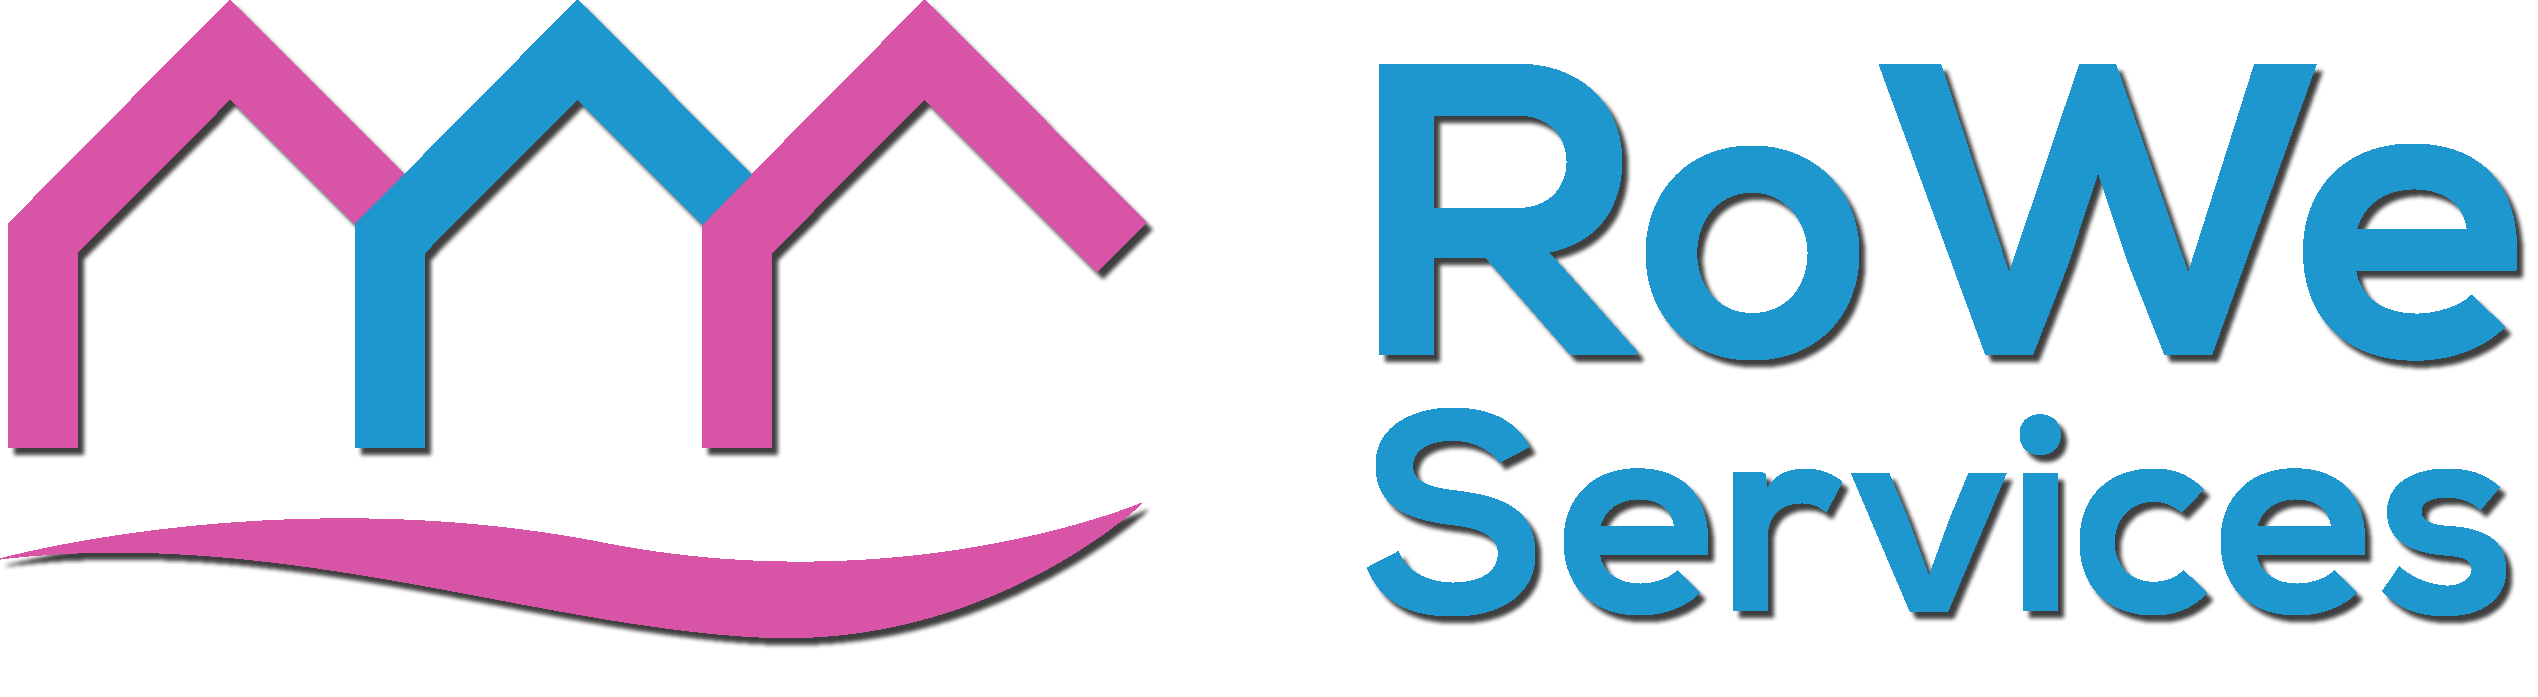 Logo roweservices